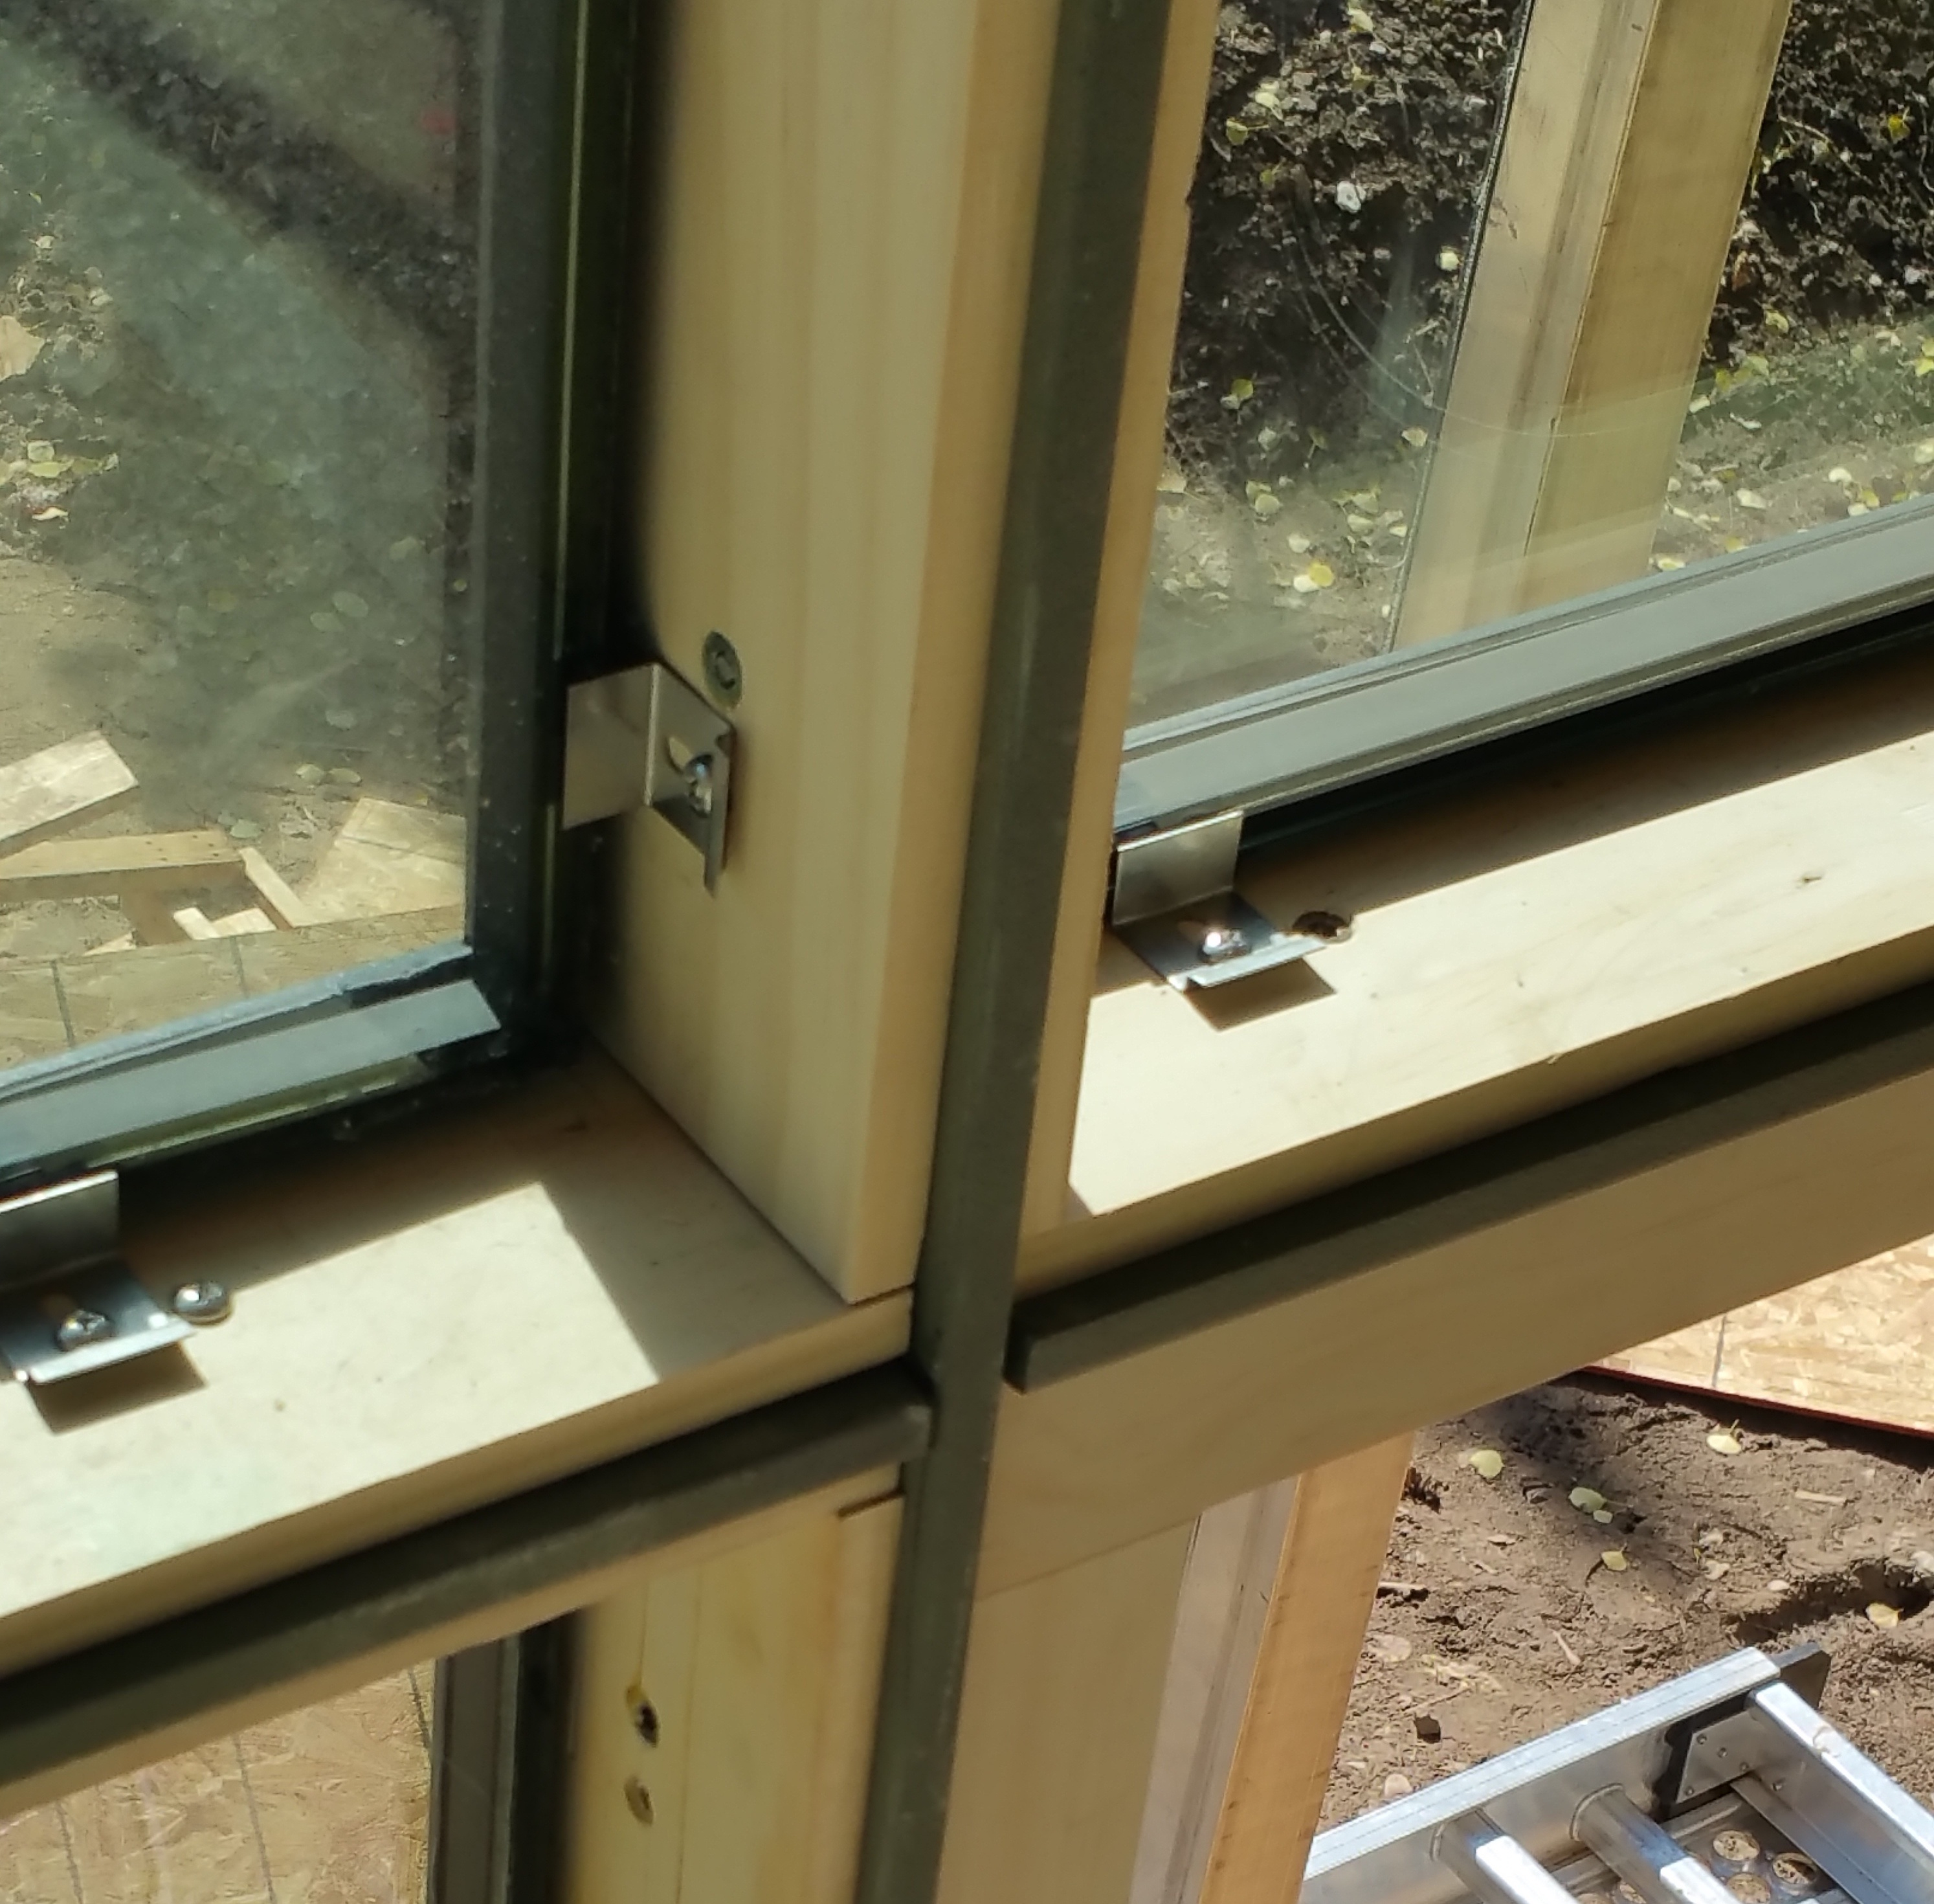 2Fold fixed window wall with glazing beads removed exposing mounting screws.